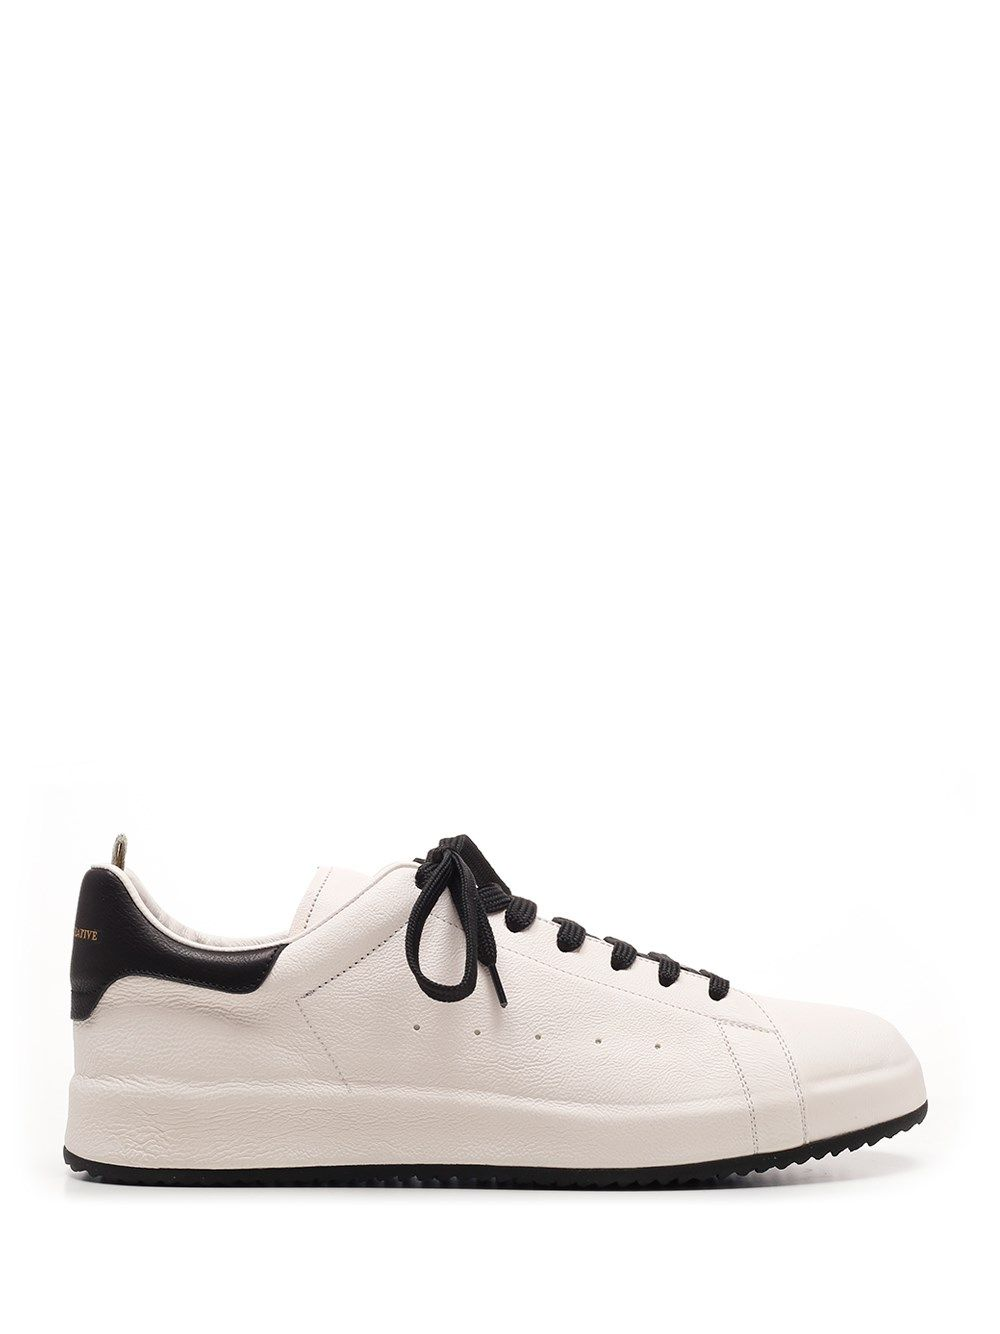 Officine Creative Leathers OFFICINE CREATIVE MEN'S OCUTWAC001GIAN1L564 WHITE OTHER MATERIALS SNEAKERS